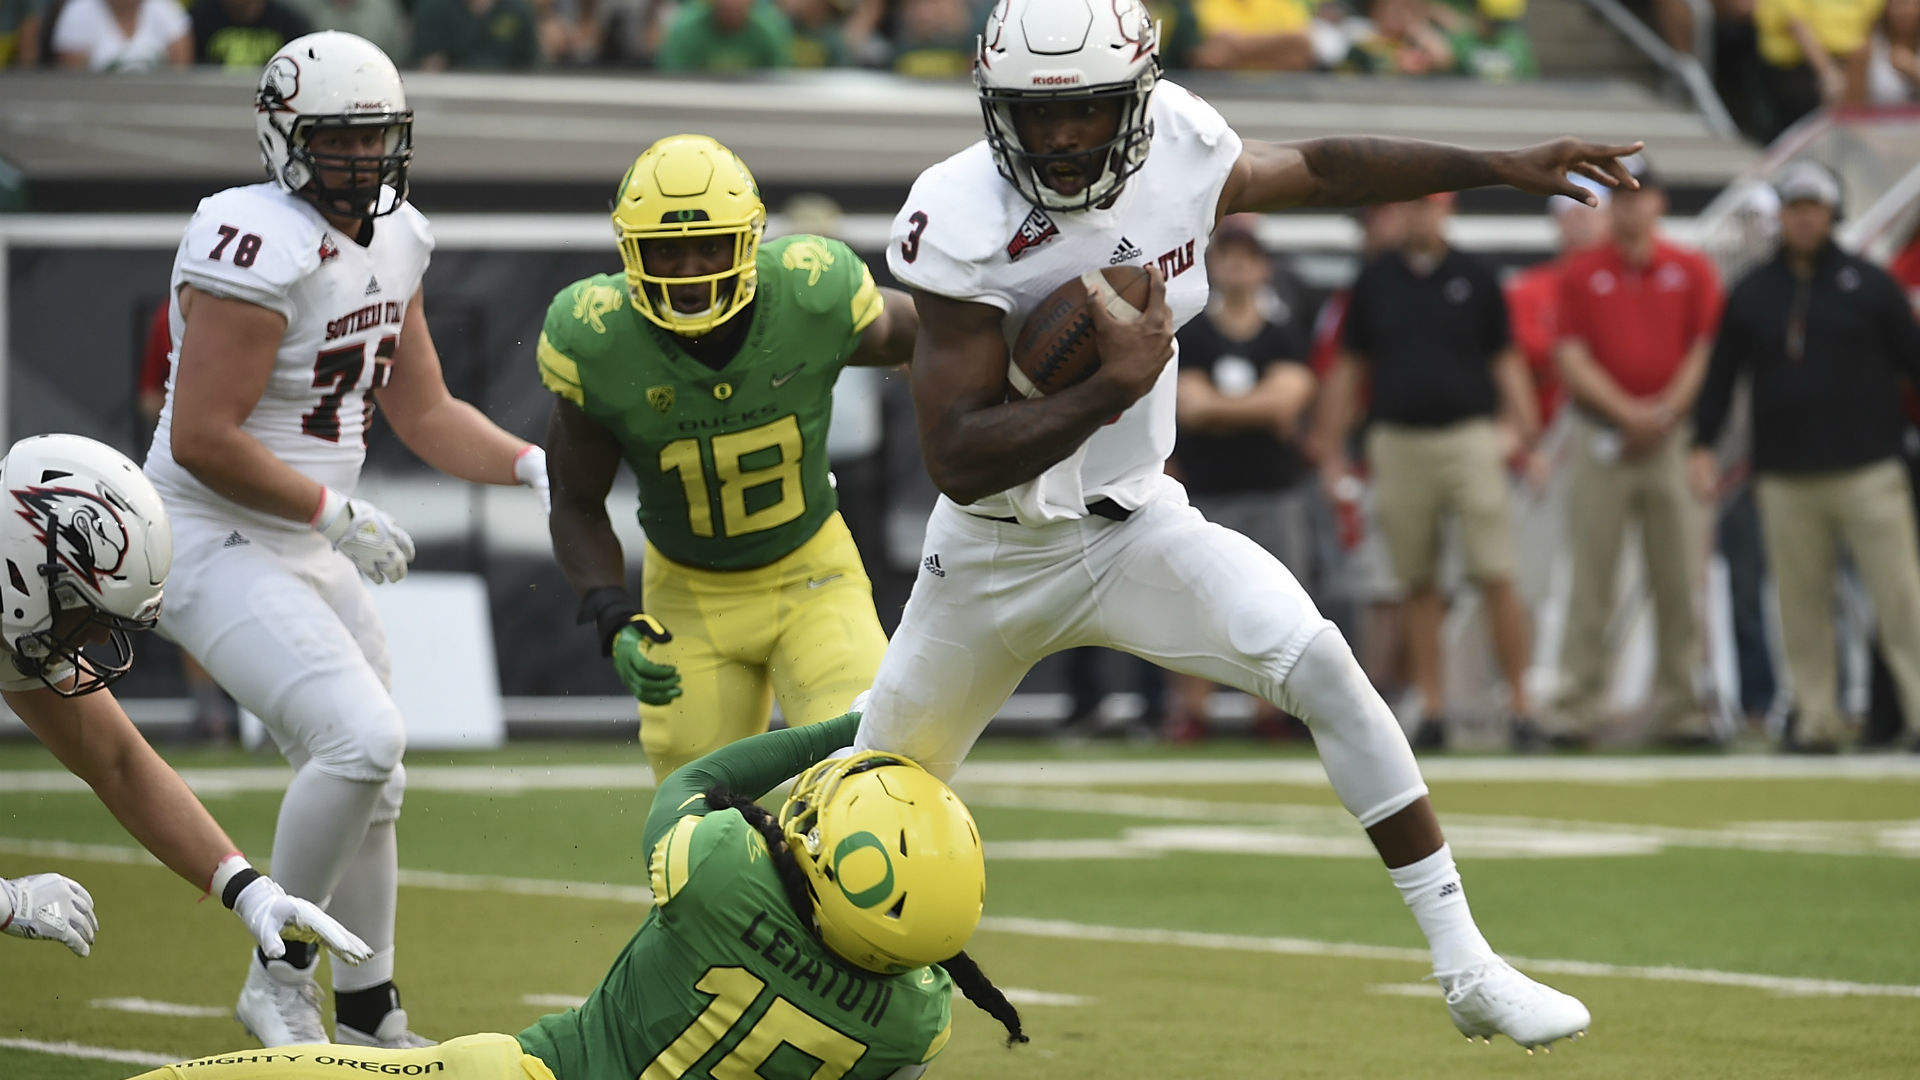 Former Oregon player Leiato killed in car crash